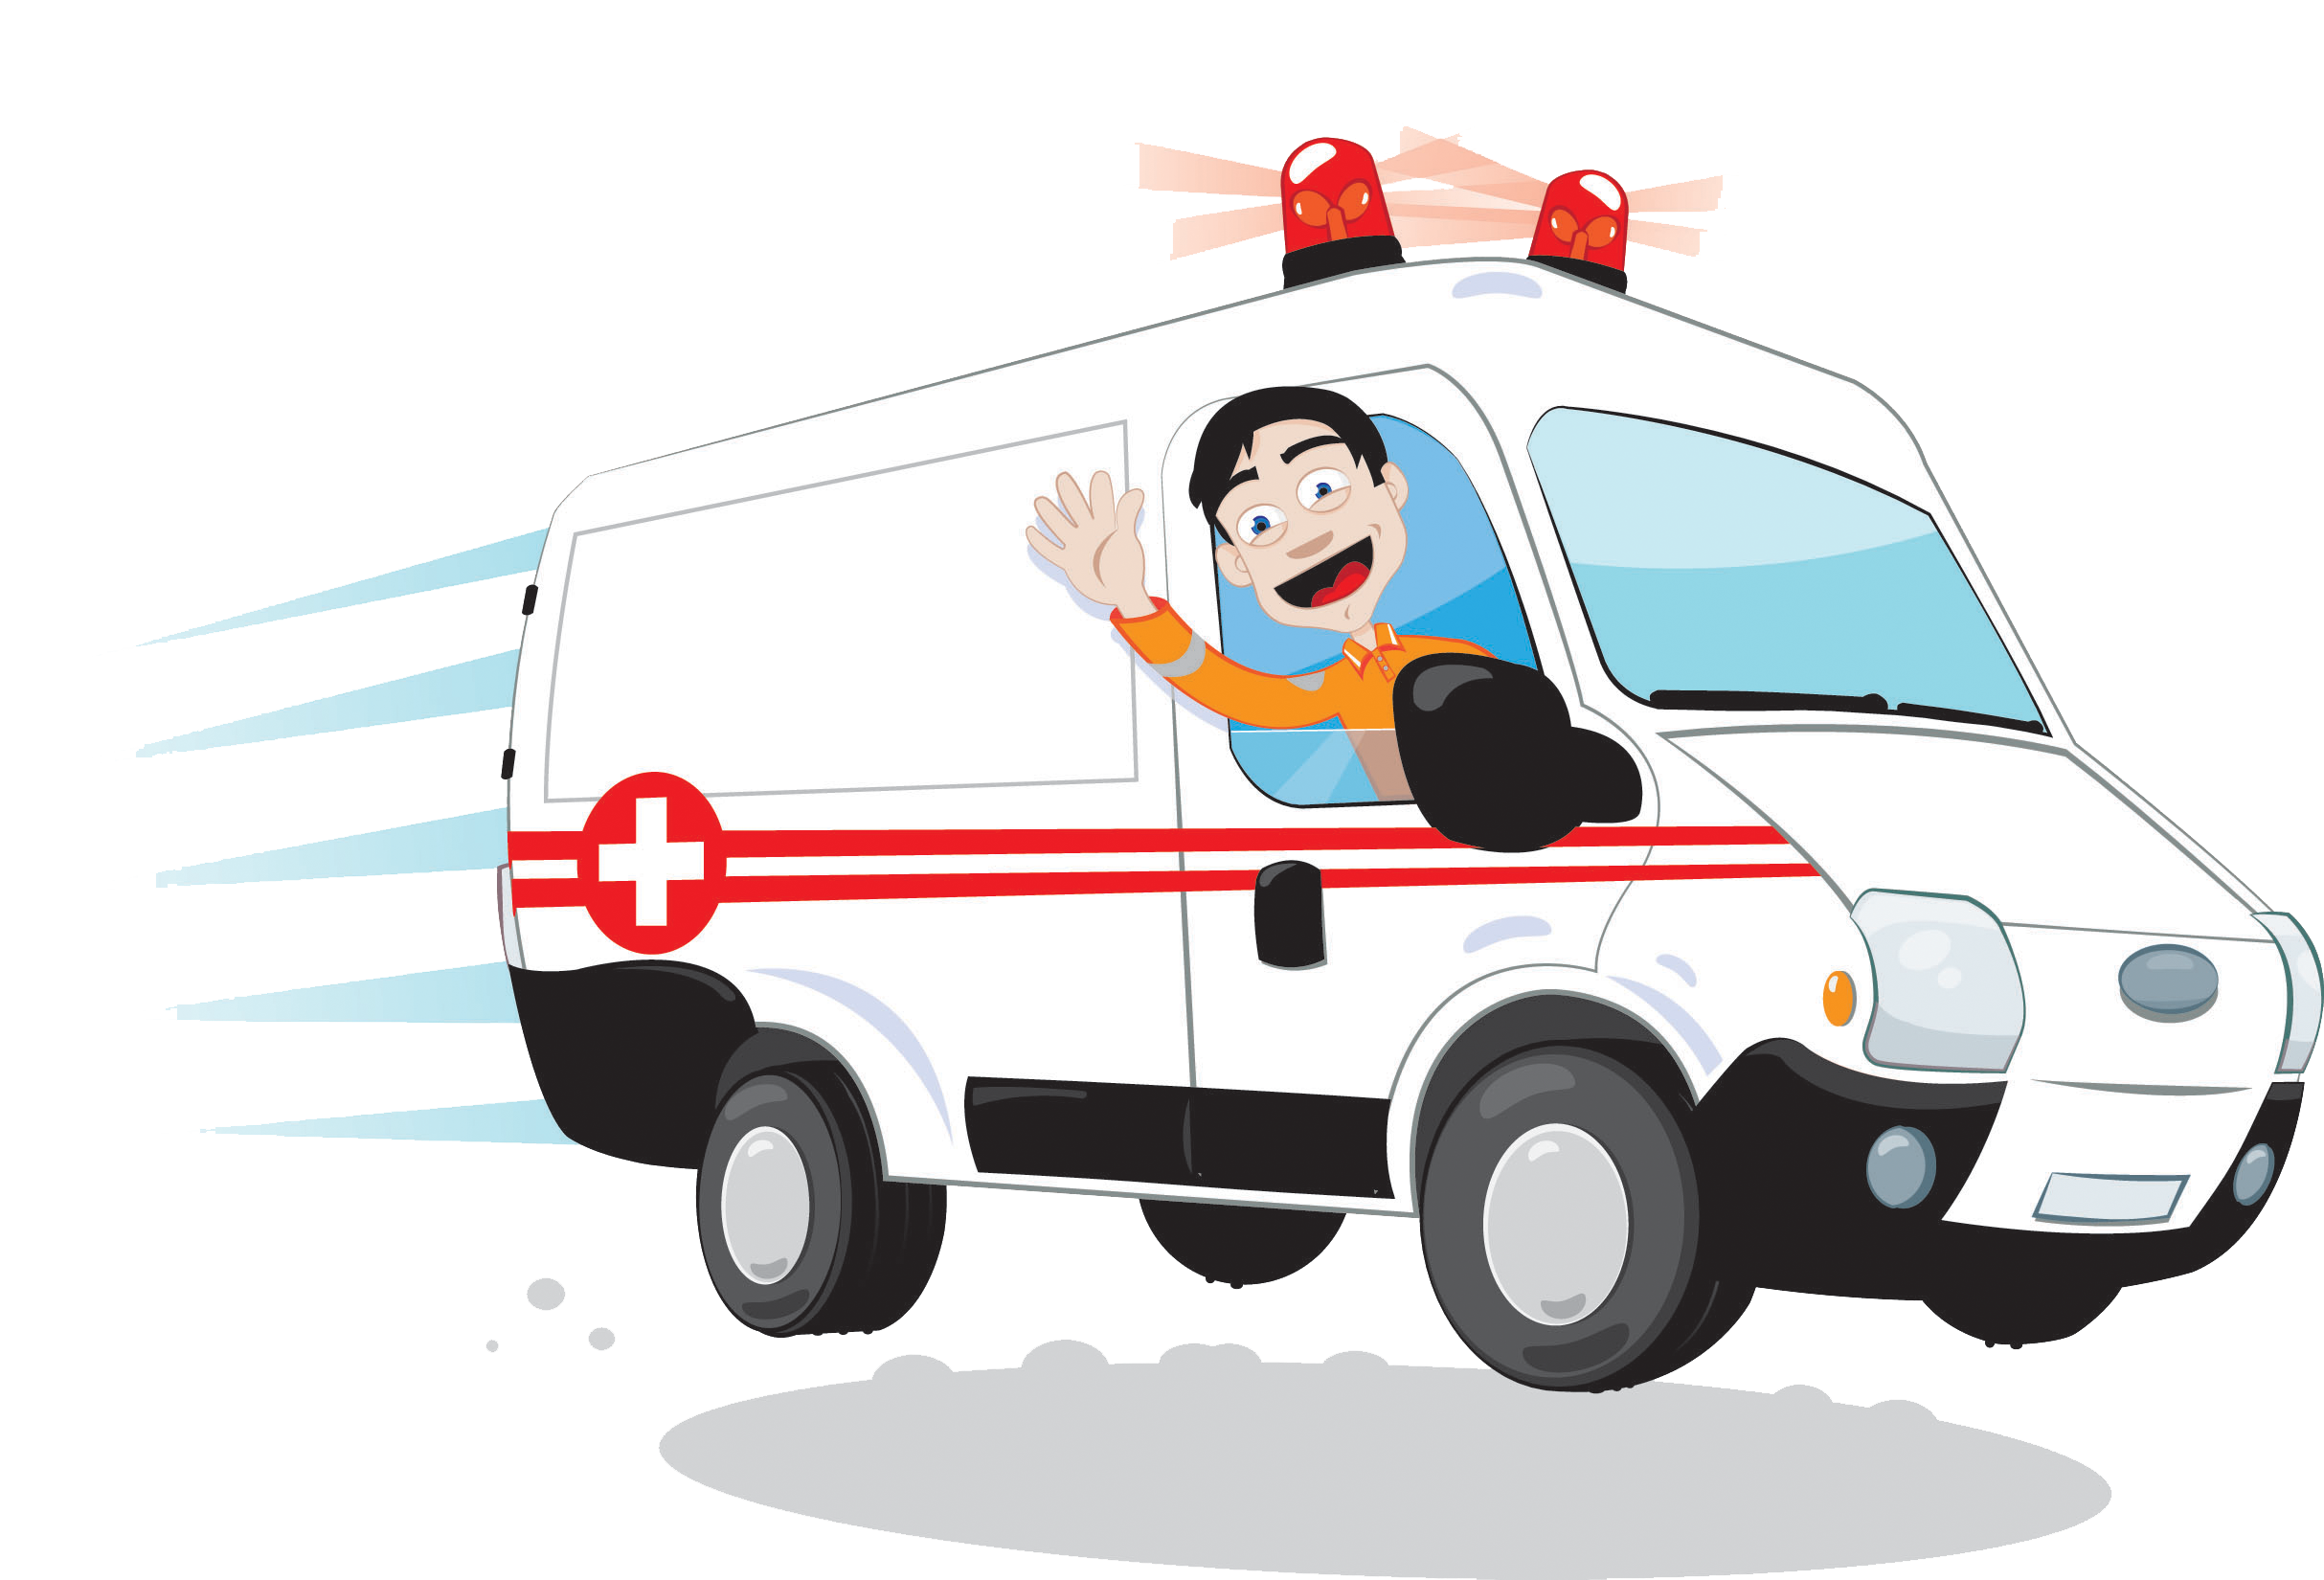 Emergency clipart ambulance driver. Royalty free stock photography